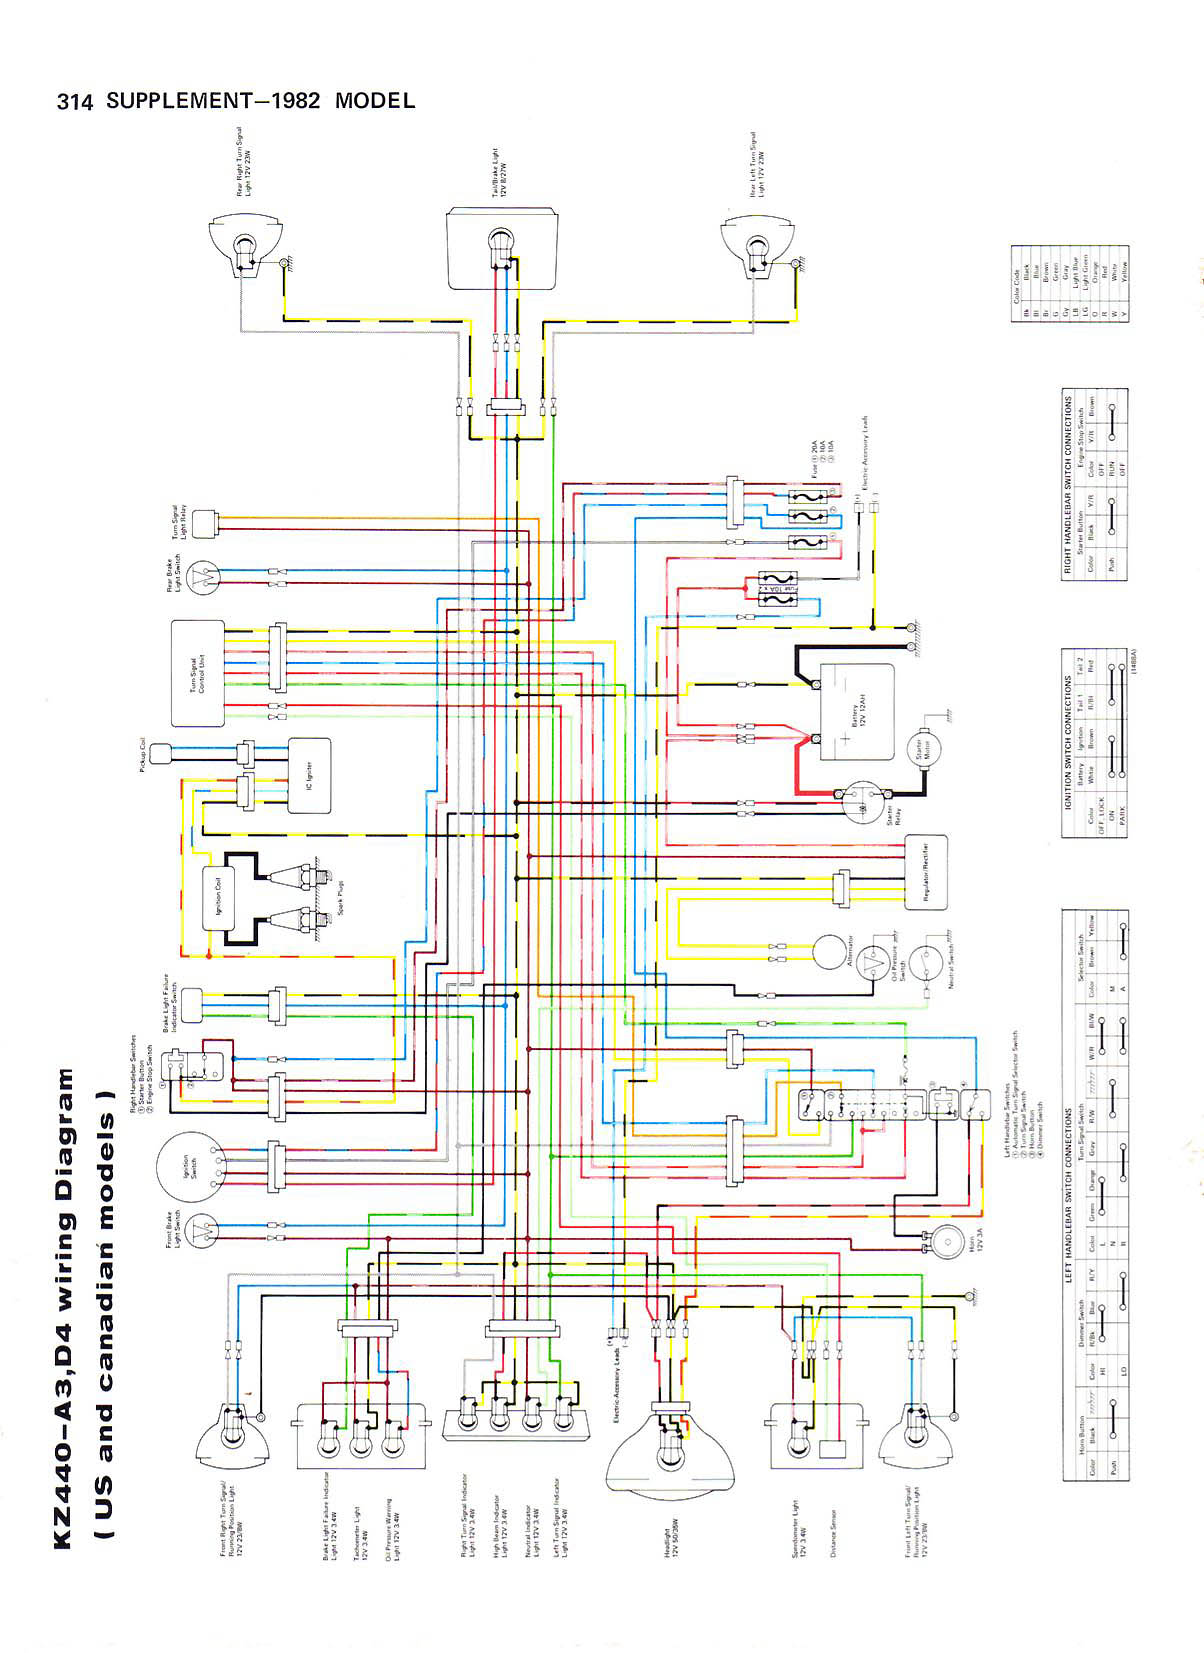 Kawasaki KZ 440 %2780 a %2782 Service Manual_Page_311 index of kz440 wiring diagrams kz400 wiring diagram at alyssarenee.co